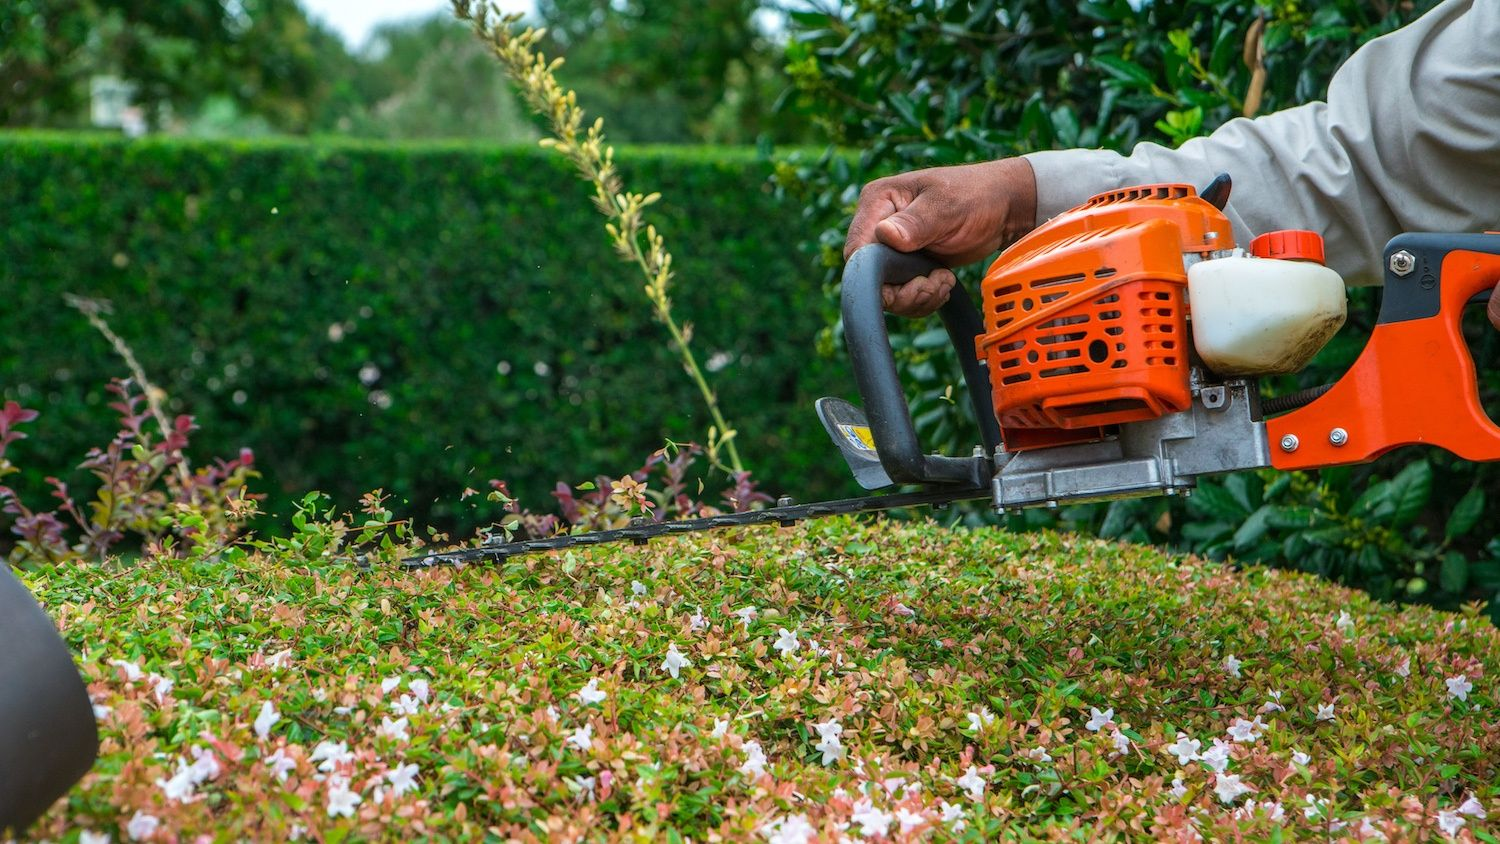 shrub trimming performed by landscape maintenance technician